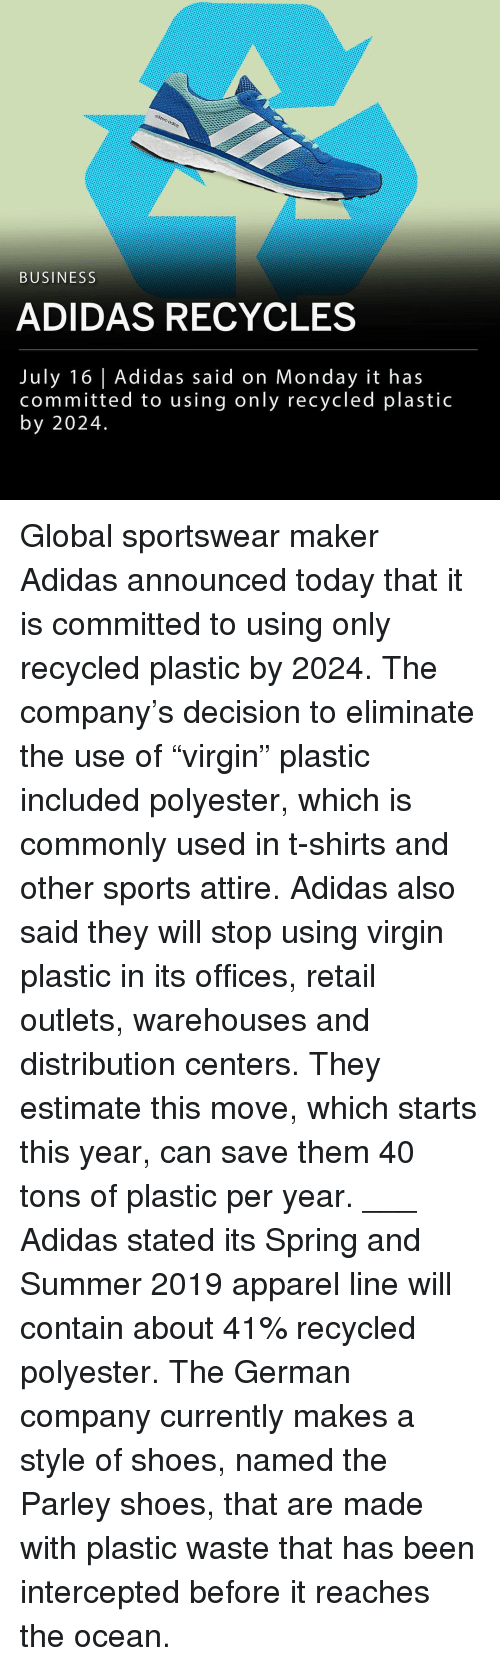 """Adidas, Memes, and Shoes: BUSINESS  ADIDAS RECYCLES  July 16 Adidas said on Monday it has  committed to using only recycled plastic  by 2024. Global sportswear maker Adidas announced today that it is committed to using only recycled plastic by 2024. The company's decision to eliminate the use of """"virgin"""" plastic included polyester, which is commonly used in t-shirts and other sports attire. Adidas also said they will stop using virgin plastic in its offices, retail outlets, warehouses and distribution centers. They estimate this move, which starts this year, can save them 40 tons of plastic per year. ___ Adidas stated its Spring and Summer 2019 apparel line will contain about 41% recycled polyester. The German company currently makes a style of shoes, named the Parley shoes, that are made with plastic waste that has been intercepted before it reaches the ocean."""